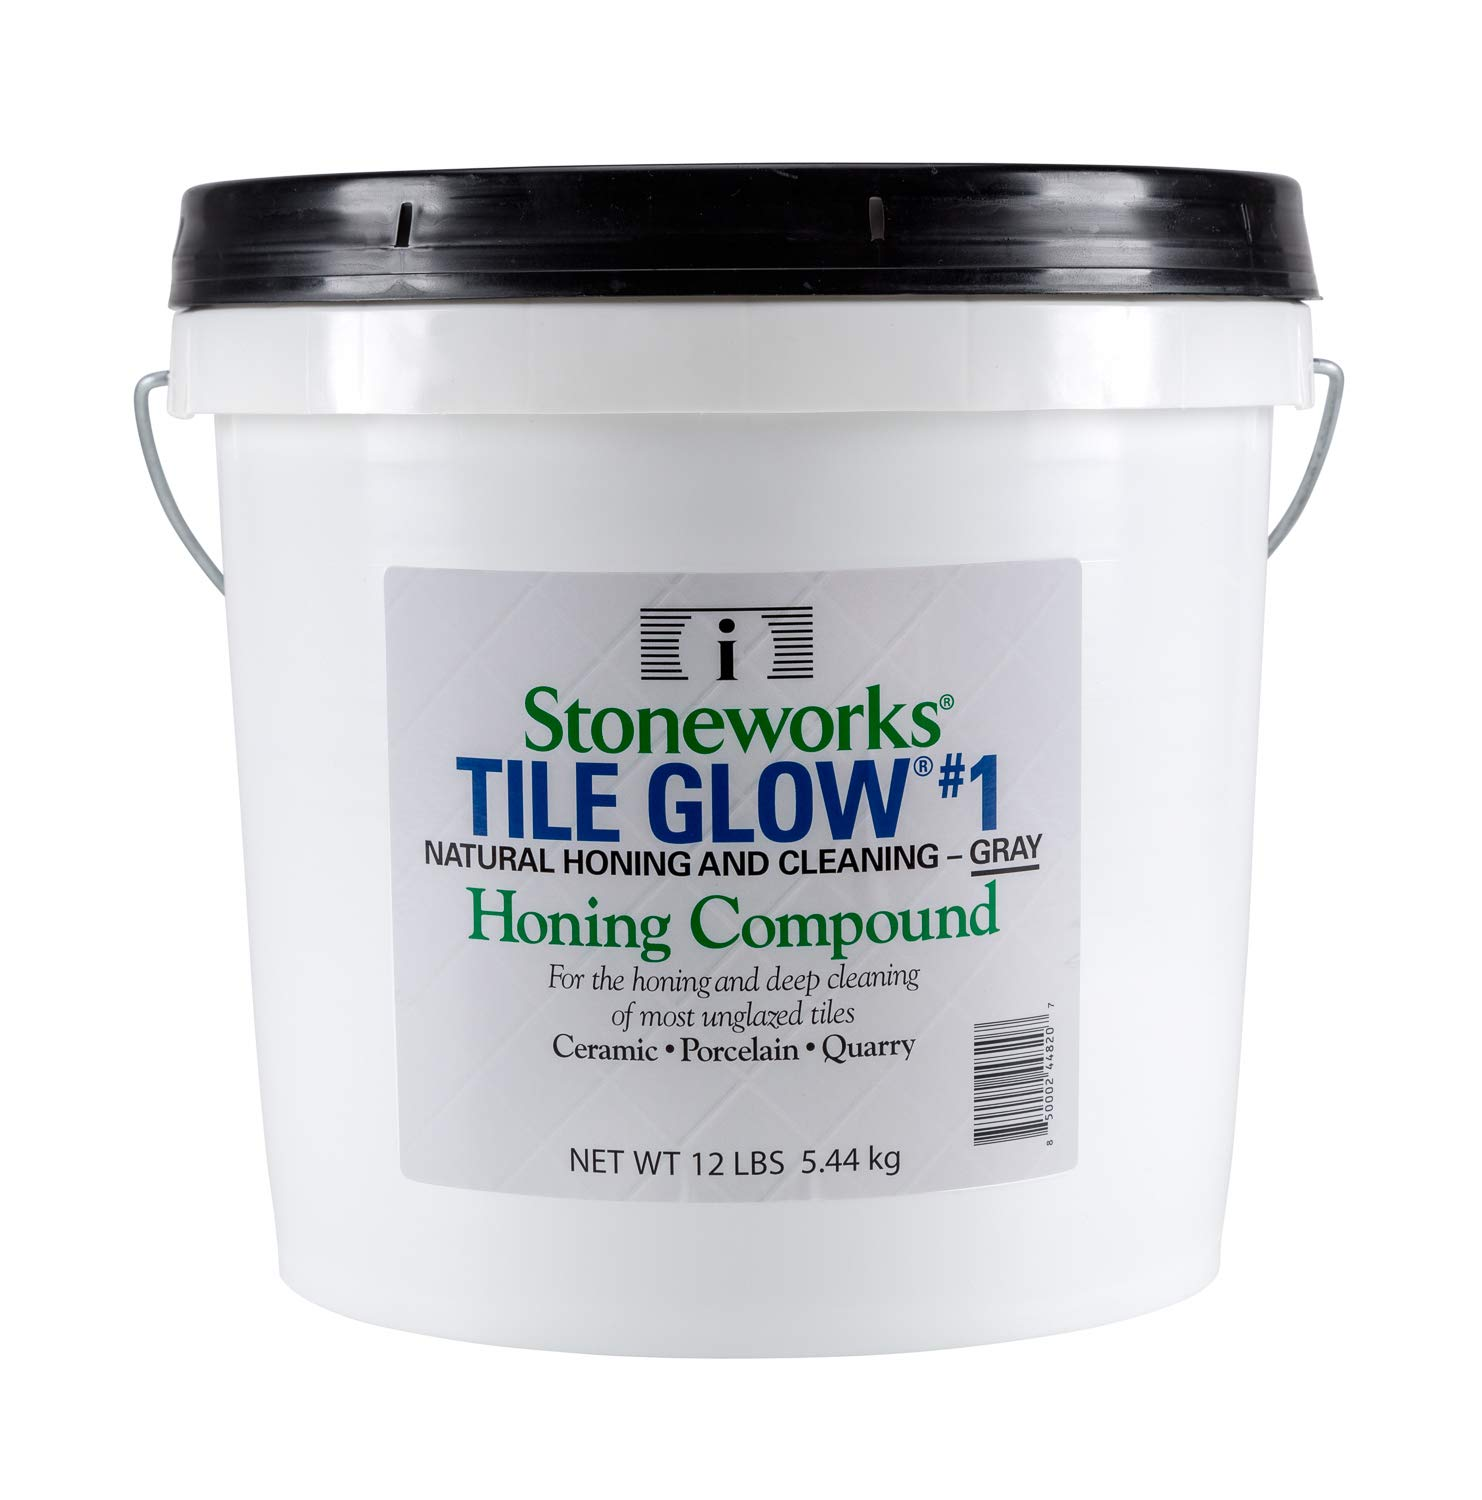 Tile Glow #1 Gray (12 Lb) Natural, Non-Wax Compound for The honing and deep Cleaning of Most unglazed Ceramic, Porcelain and Quarry Tiles